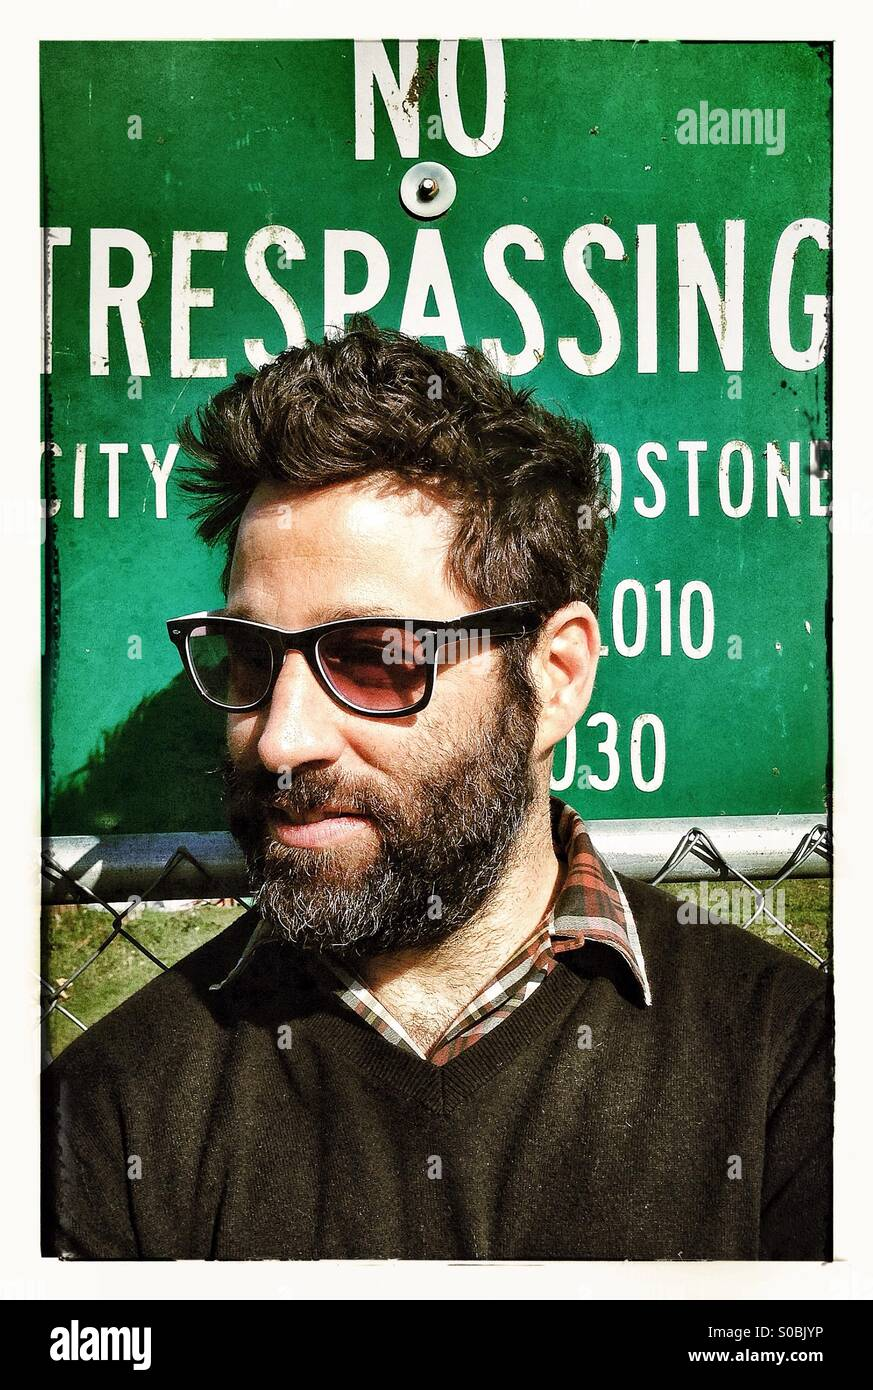 Sunglass wearing guy in front of trespassing sign - Stock Image